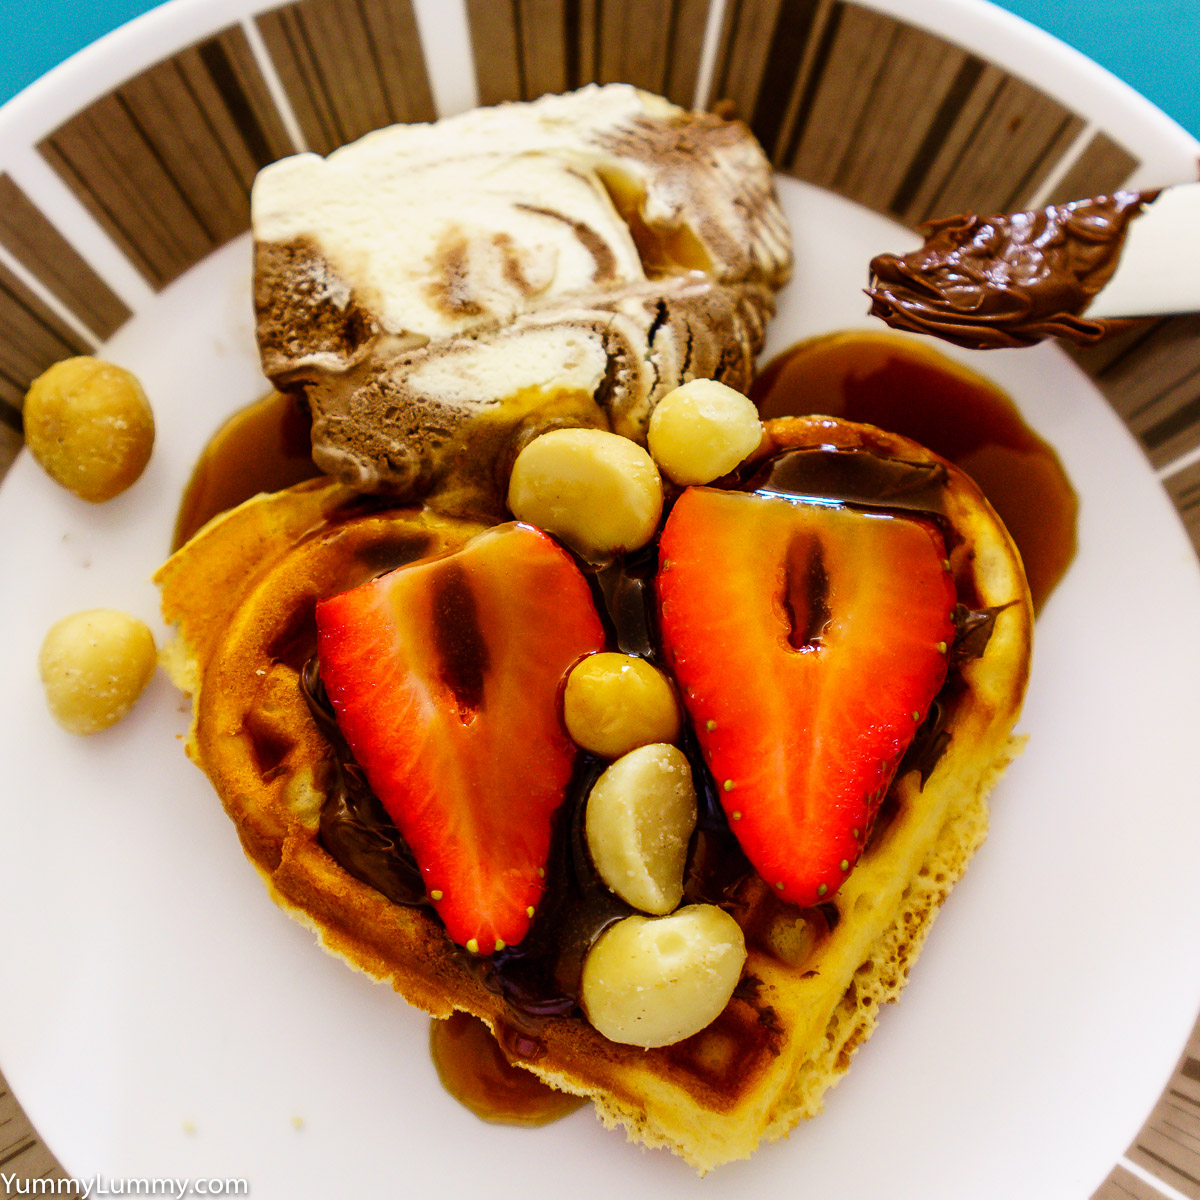 Waffle with butterscotch sauce, ice cream, nutella, fruit and Queensland nuts